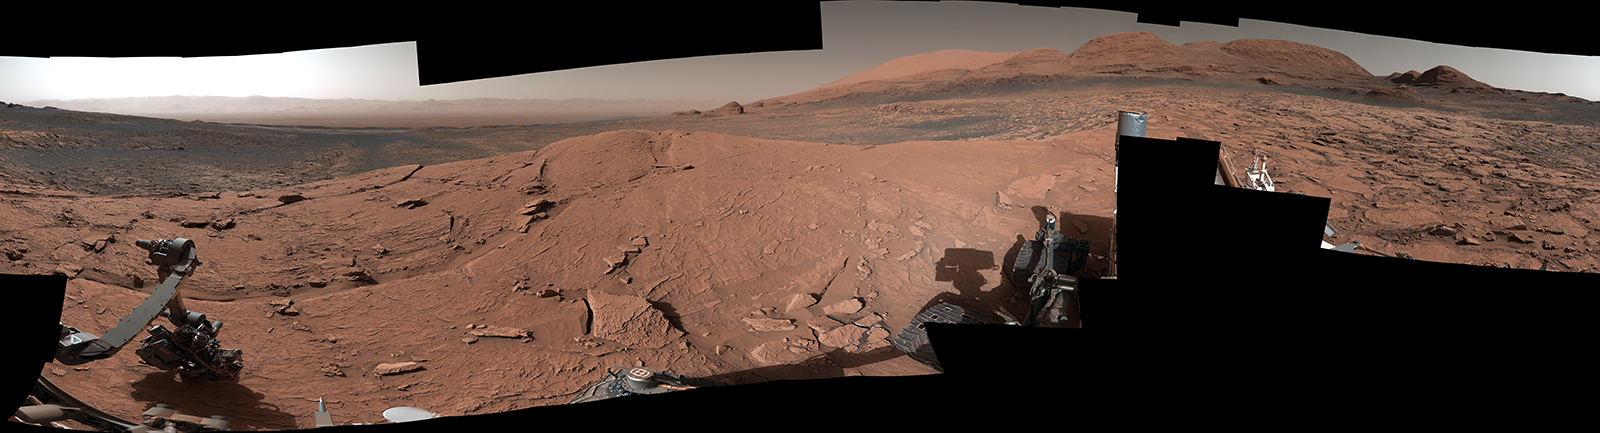 "NASA's Curiosity Mars rover took this 360-degree panorama while atop ""Mont Mercou,"" a rock formation that offered a view into Gale Crater below."